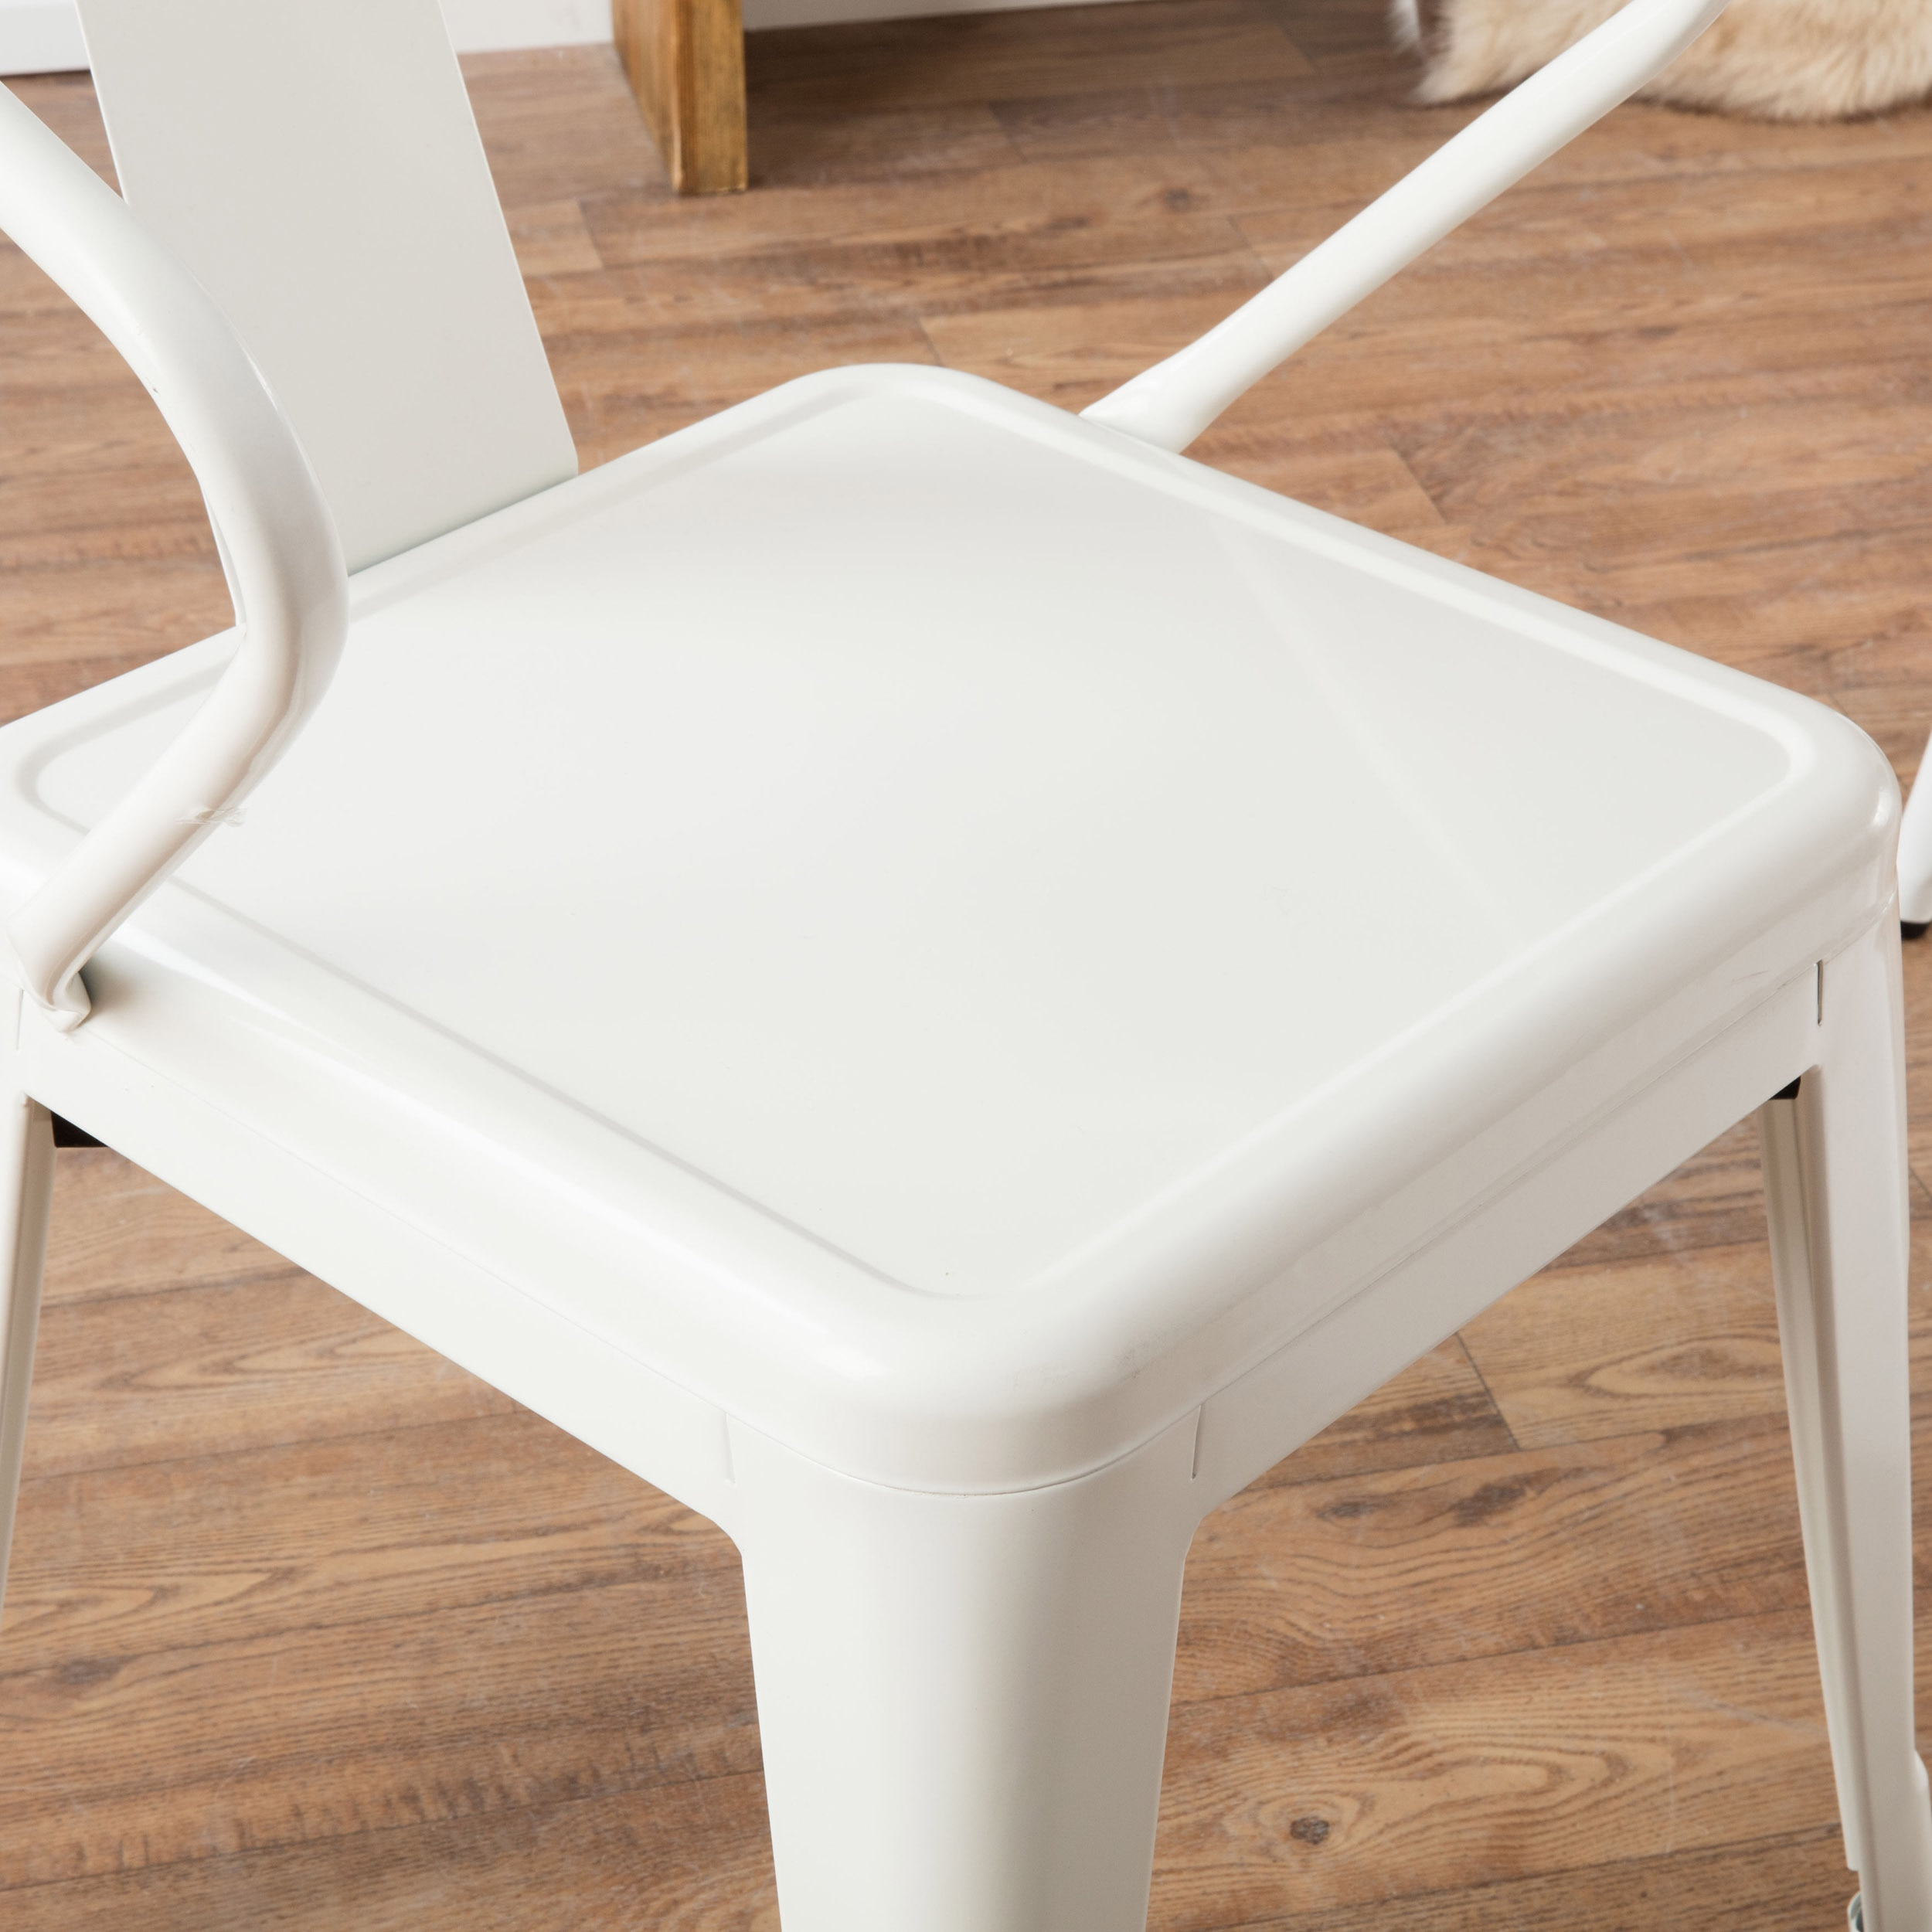 Superior White Tabouret Stacking Chairs #15 - I Love Living White Tabouret Stacking Chairs (Set Of 4) - Walmart.com